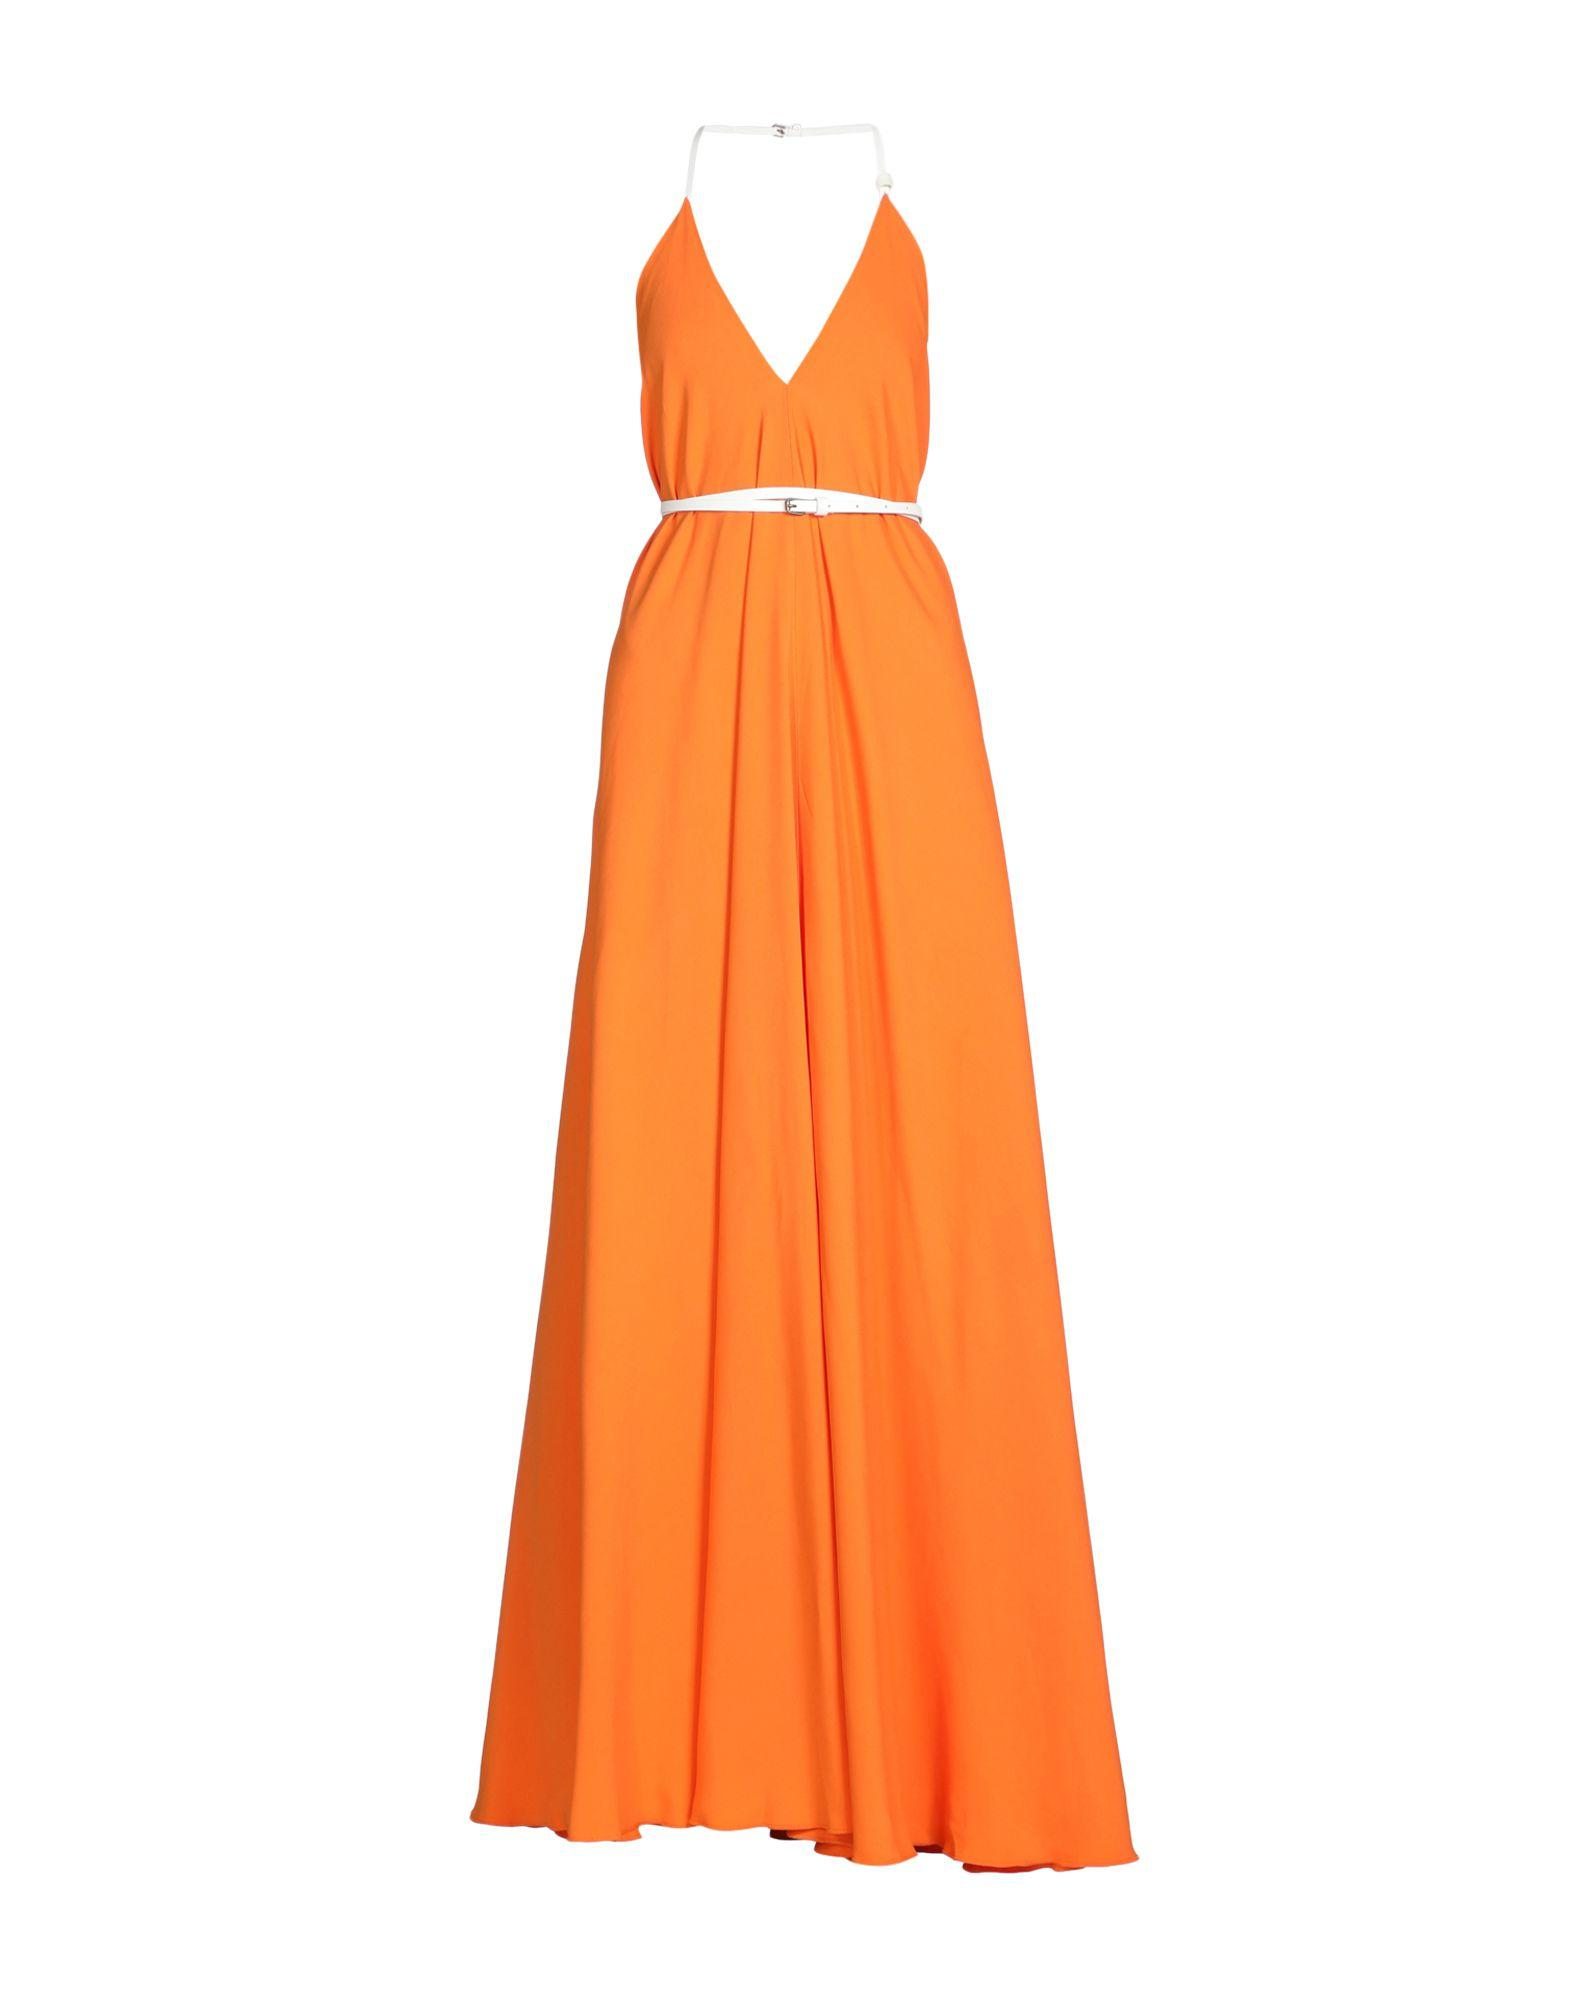 Victoria Beckham Midi Dress In Orange